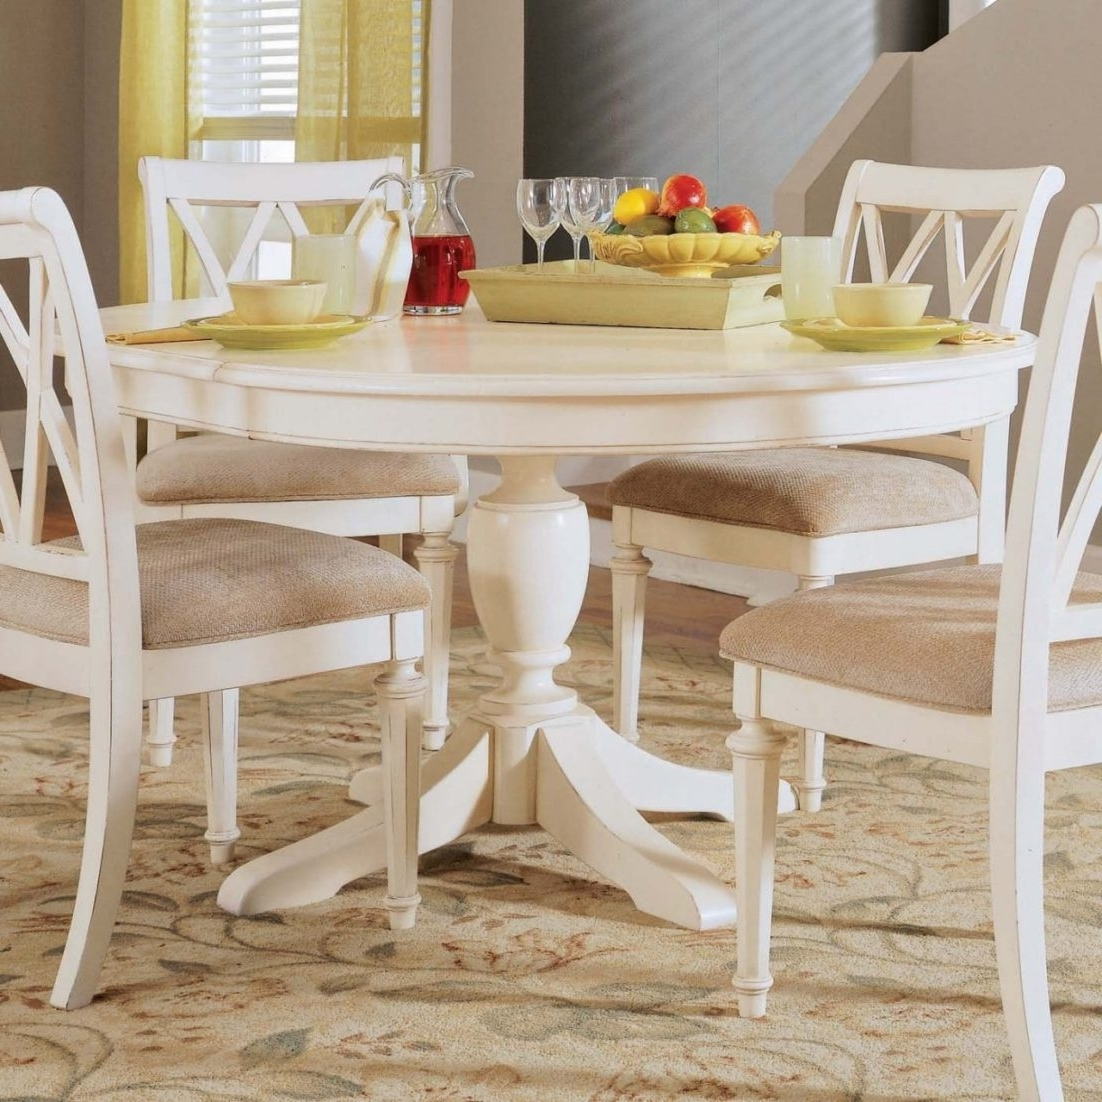 Small Round White Dining Tables With Current Dining Room Round White Table And Chairs Grey Small Kitchen Sets (View 18 of 25)